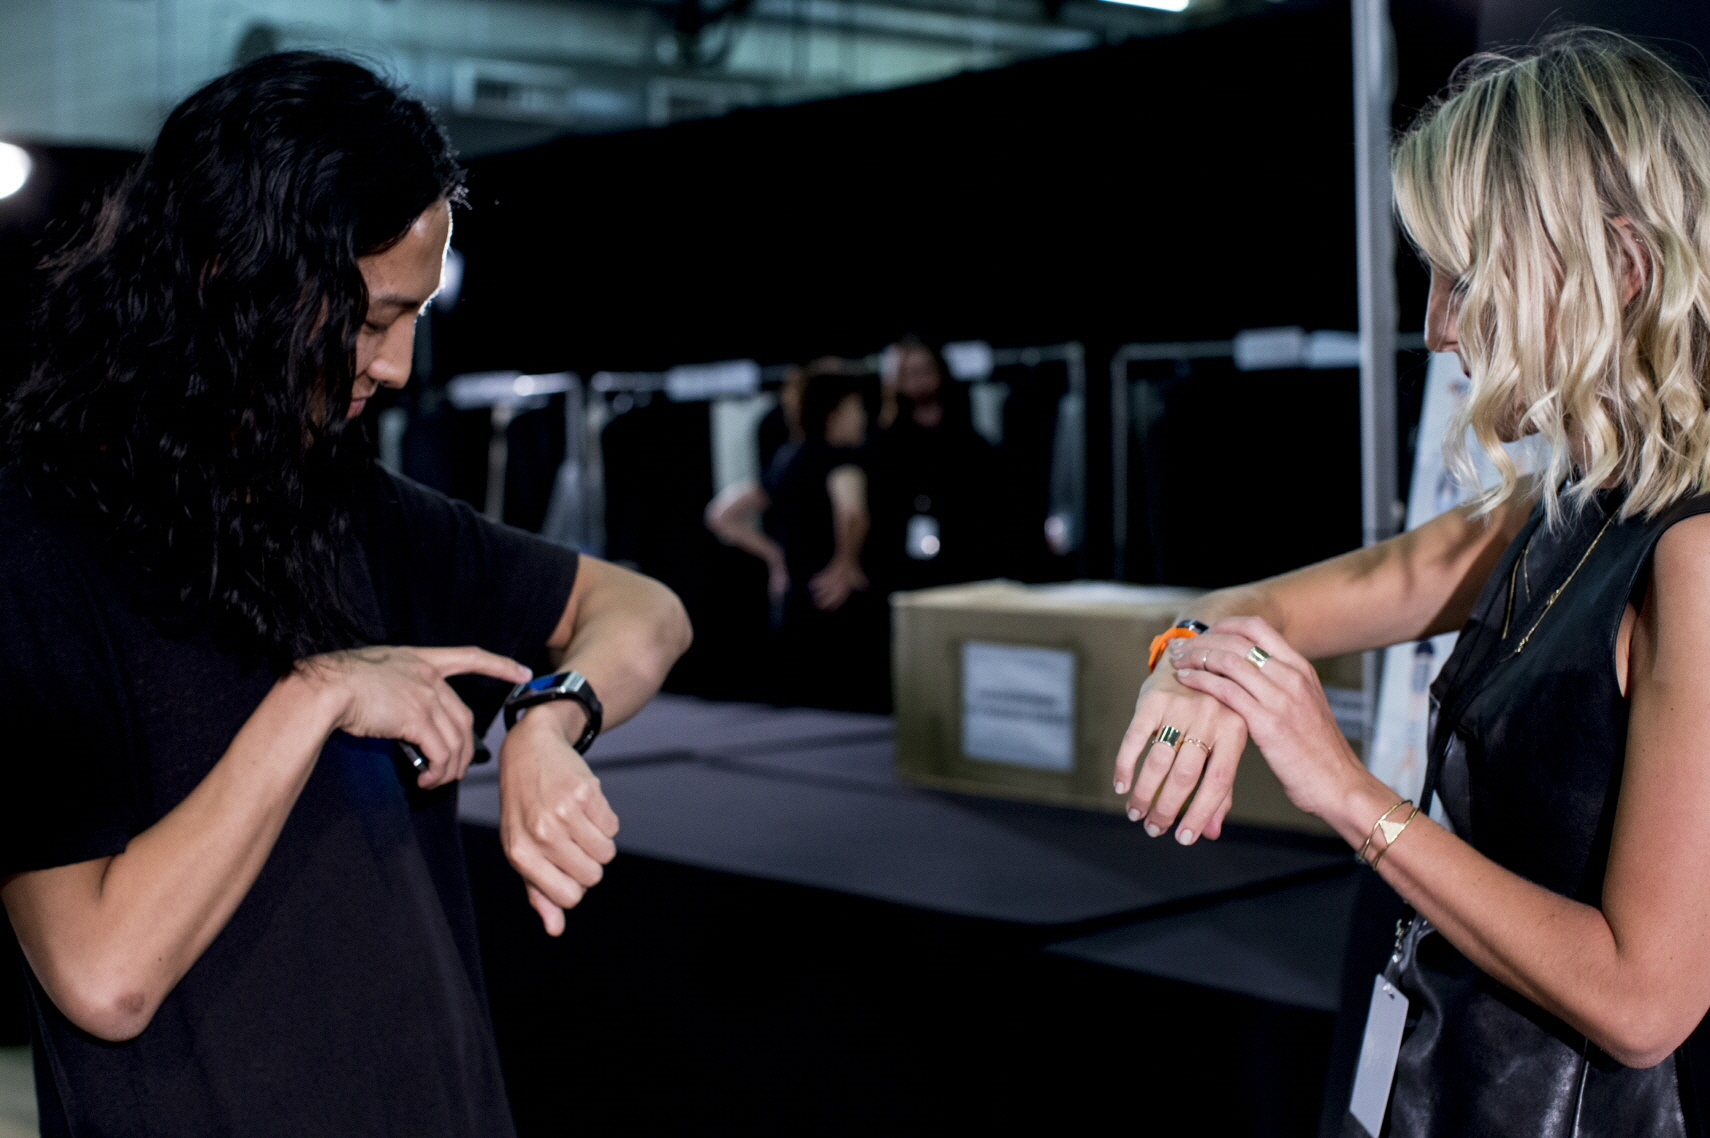 Wearables Take Over Tech